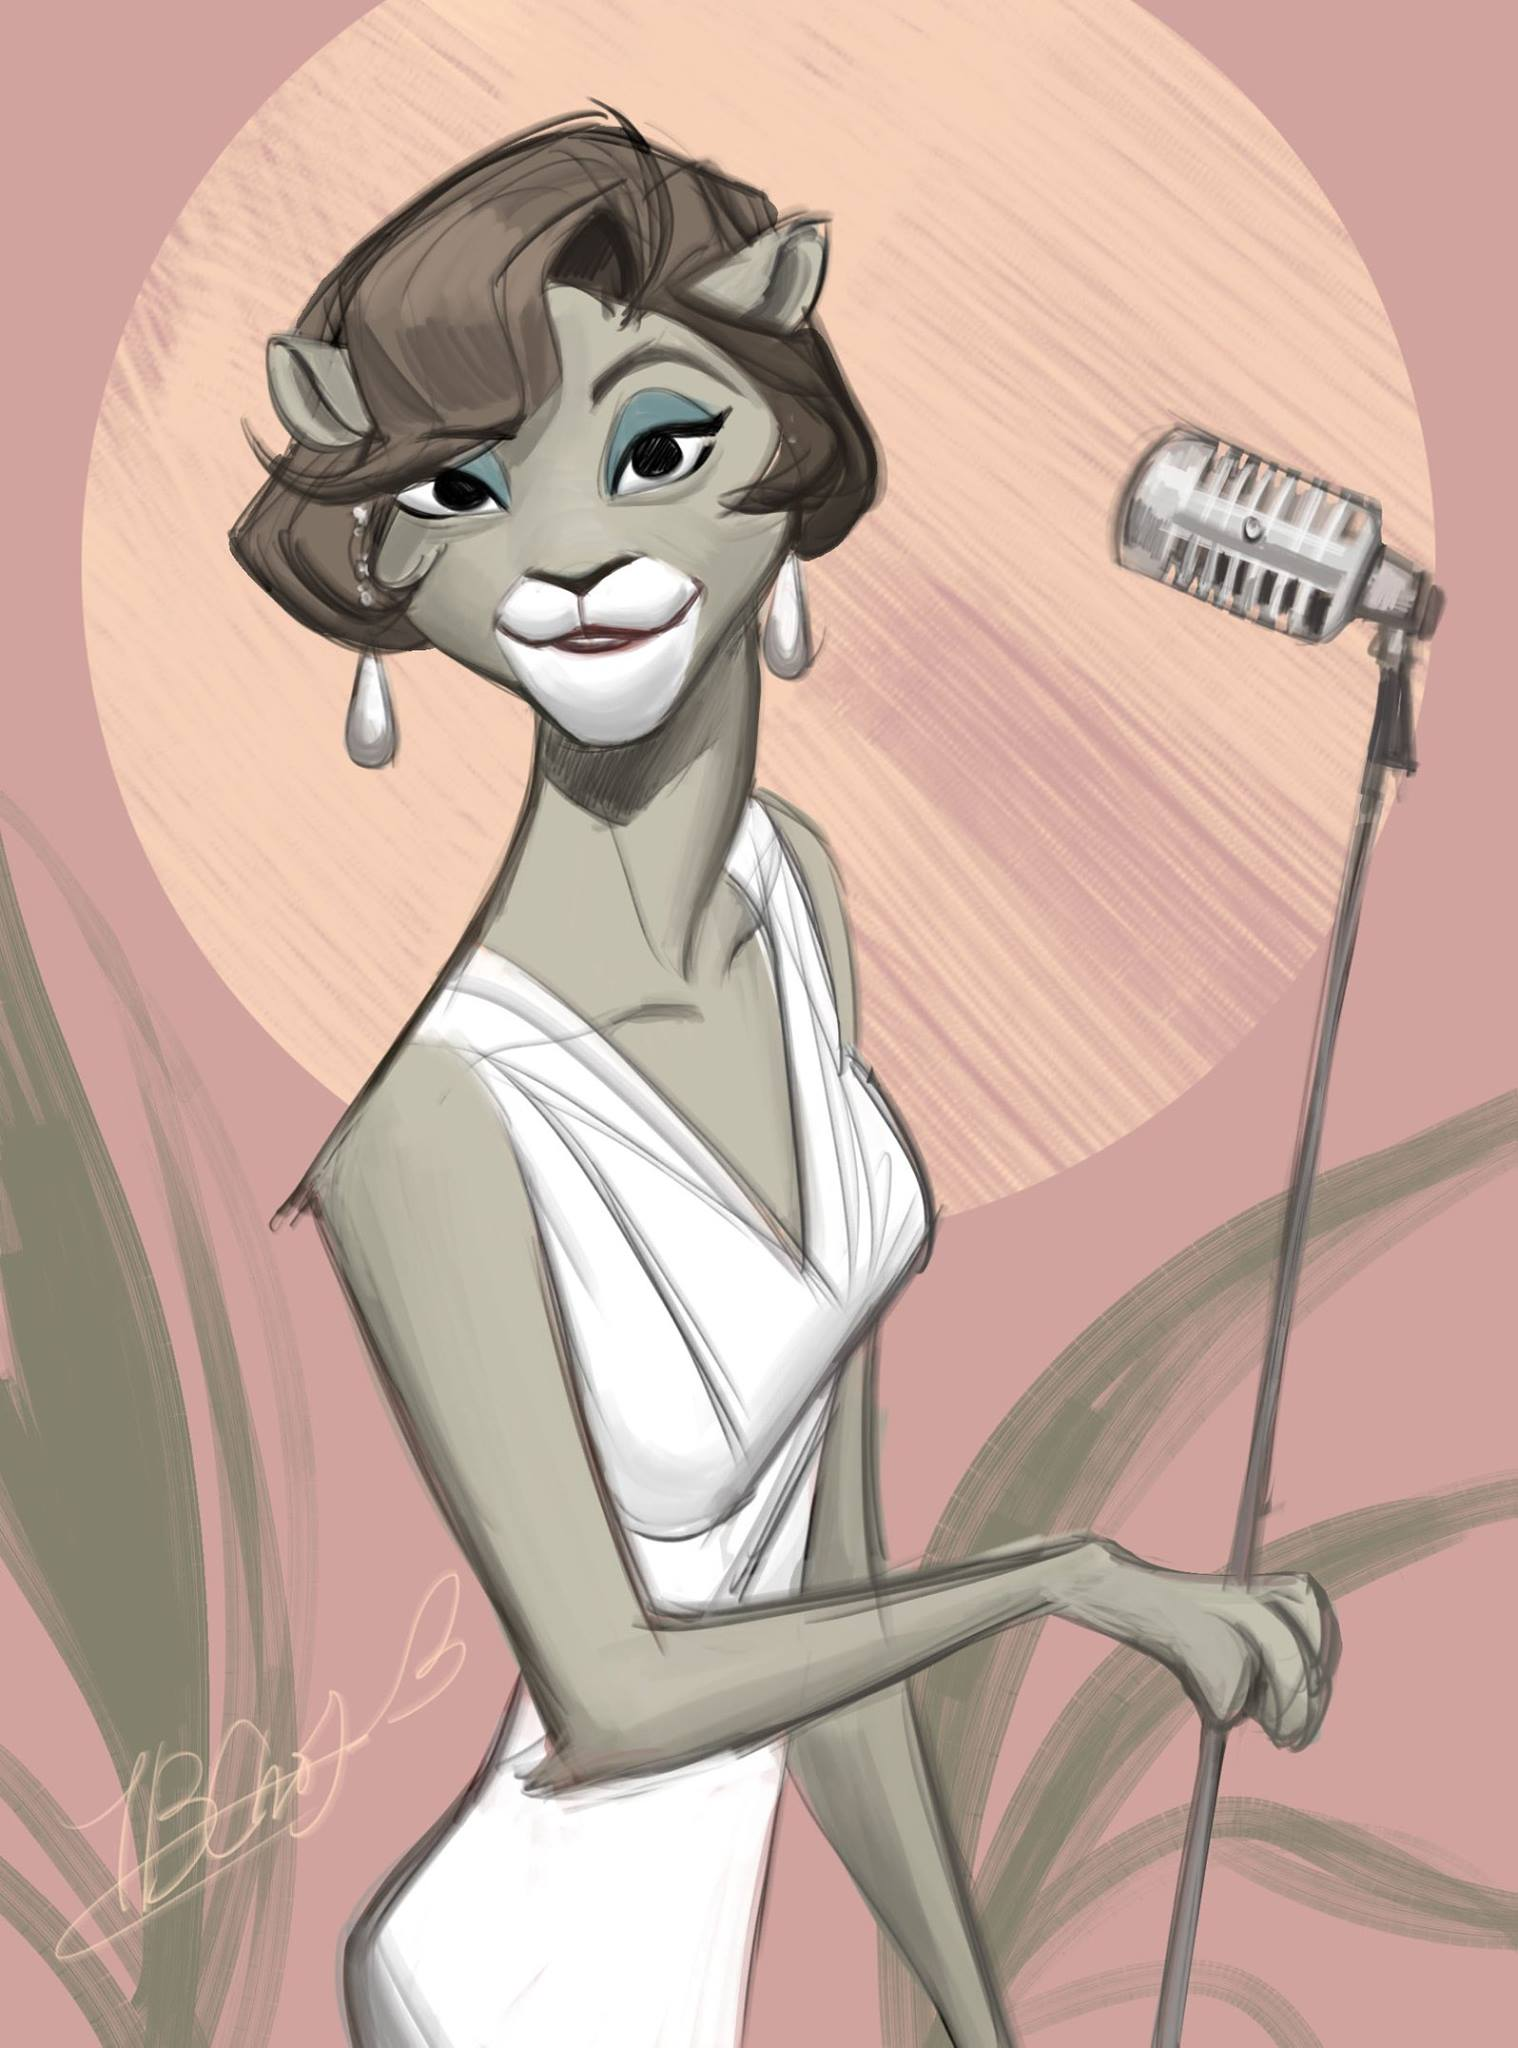 e926 anthro black_eyes brown_hair cat clothing digital_media_(artwork) dress feline female fur grey_fur hair hi_res holding_microphone jewelry looking_at_viewer mammal microphone signature simple_background smile snout solo tb_choi teeth